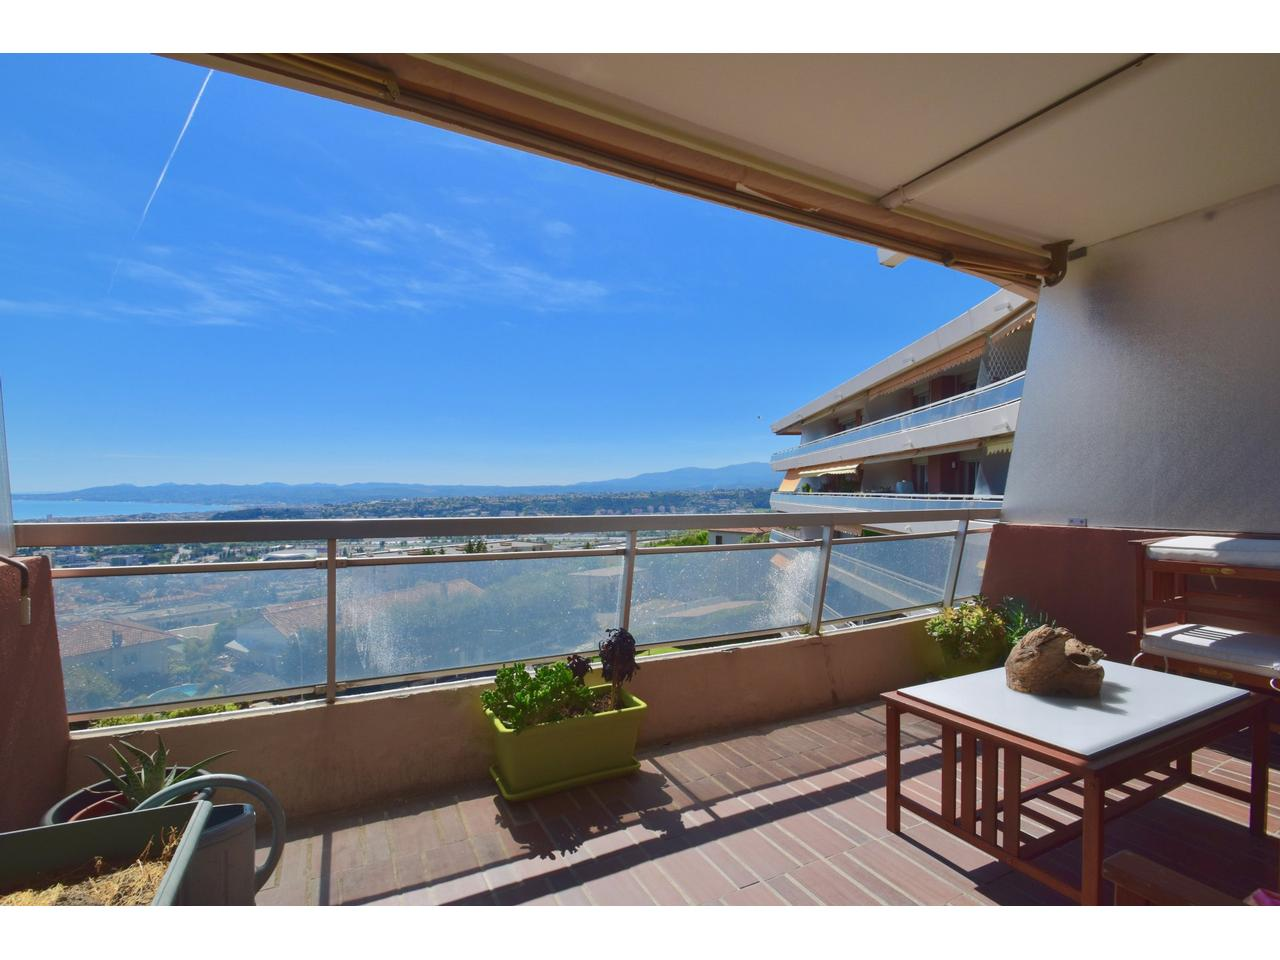 Vente Appartement Nice Port Terrasse Vente Appartement Nice Immobilier Nice Vue Mer: